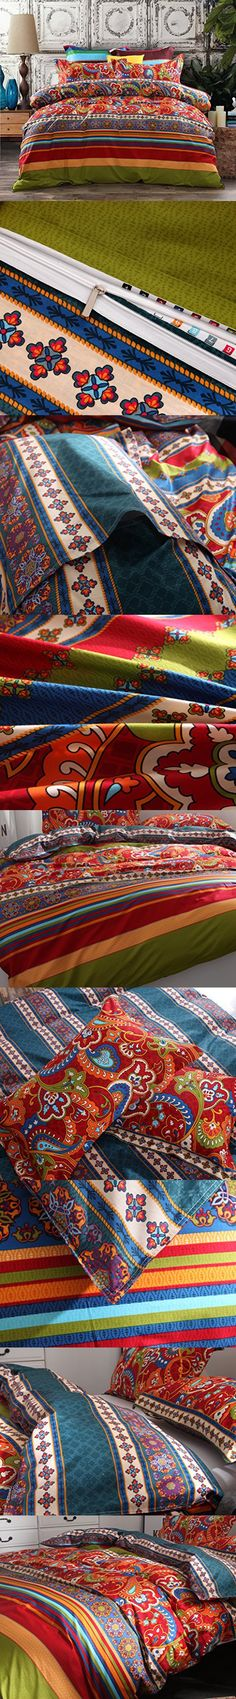 3-Piece Bohemian Ethnic Retro Multi Color Bedding Sets/Collections,Morocco Boho Chic Stripe Duvet Cover Sets with Shams,Turquoise and Tangerine,for Home Decor,Queen